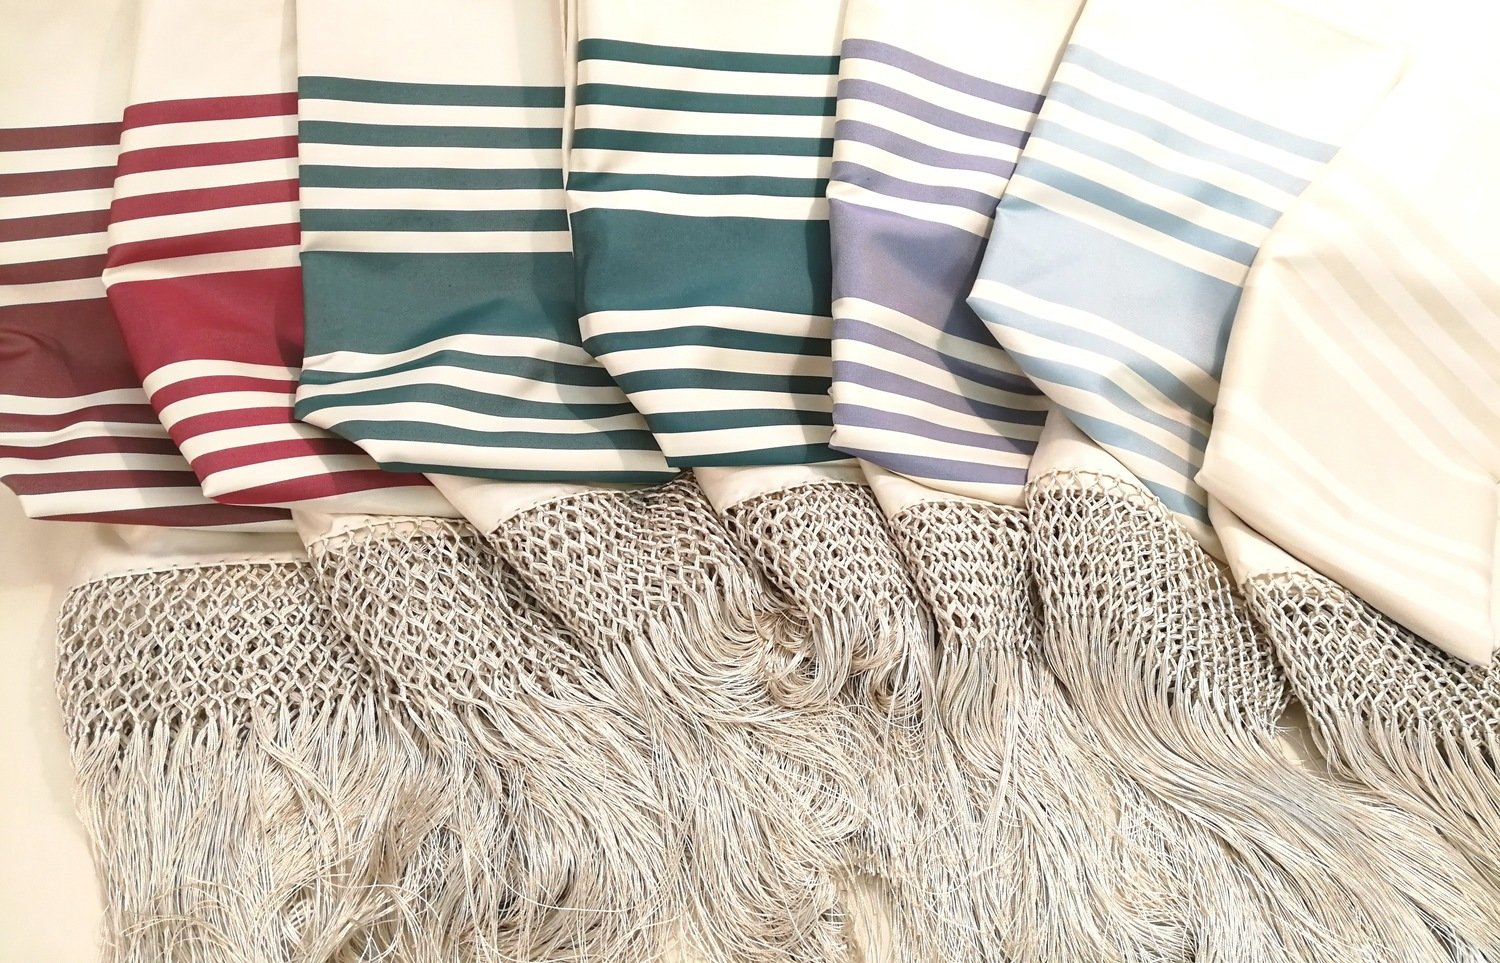 Talled Colorati | Colorful Tallit Limited Edition